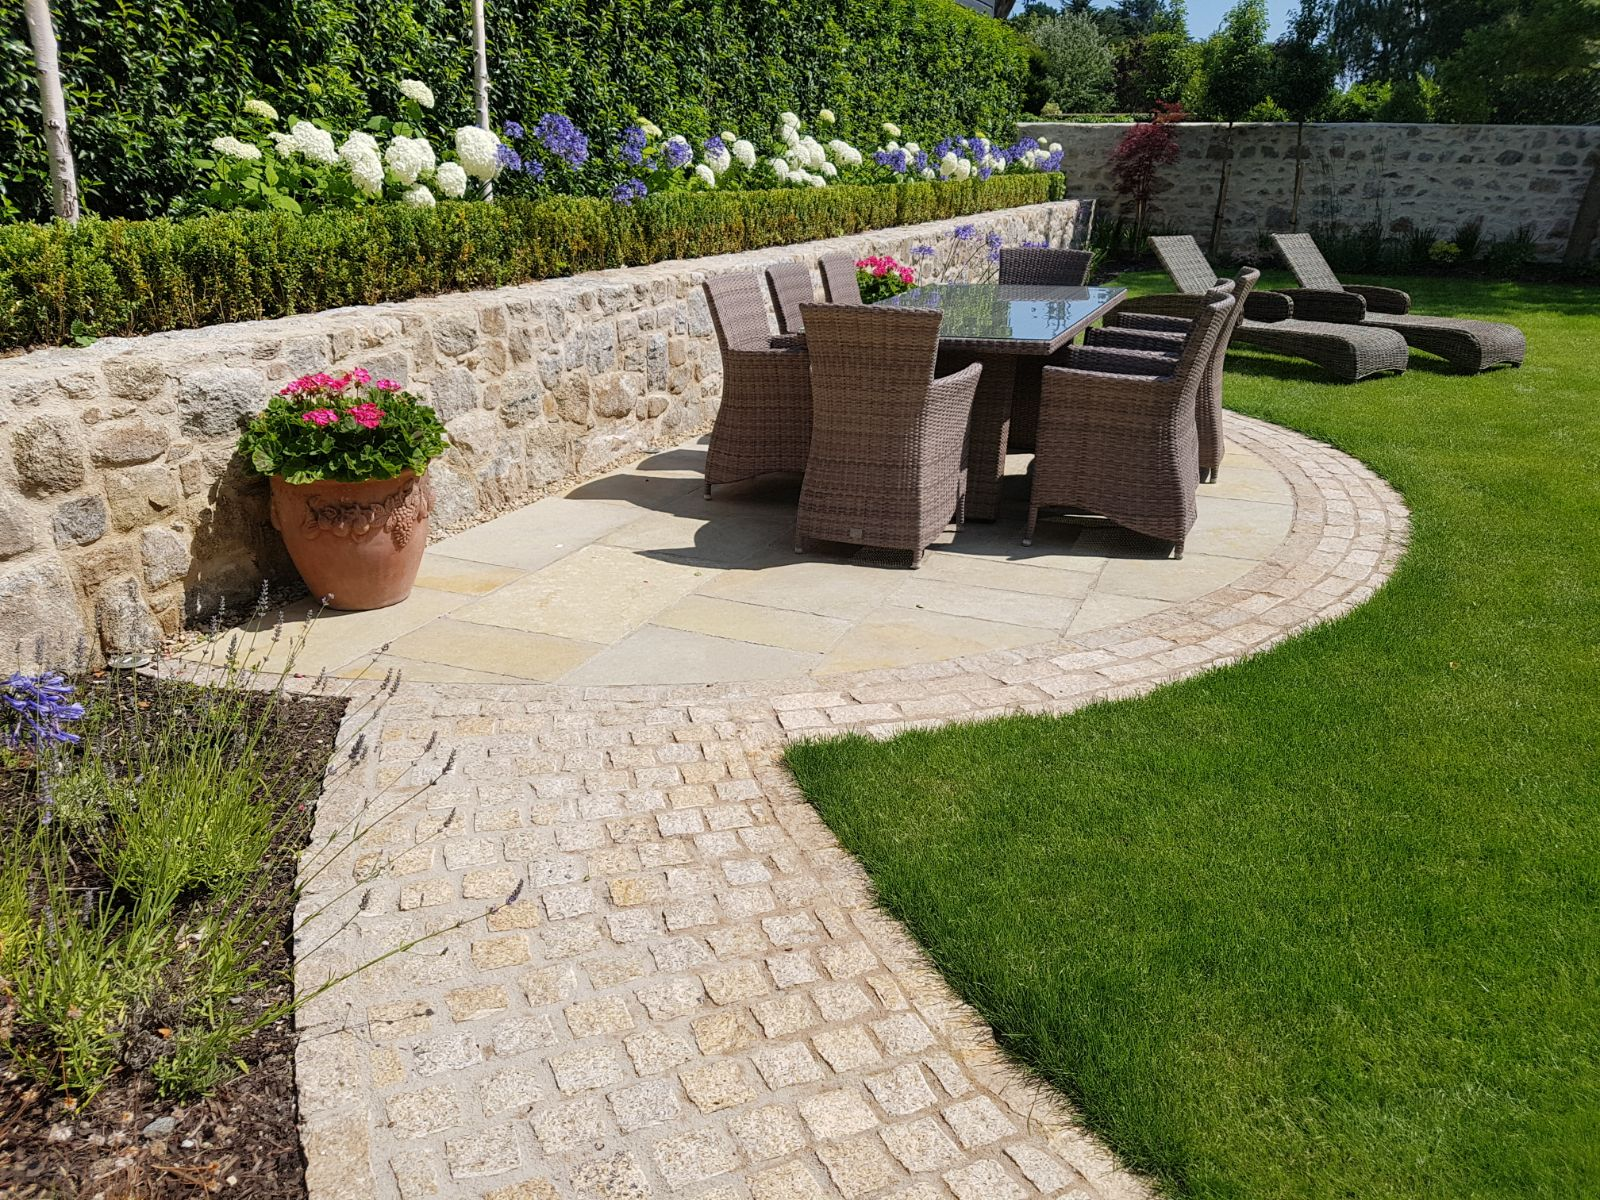 Granite wall and paving